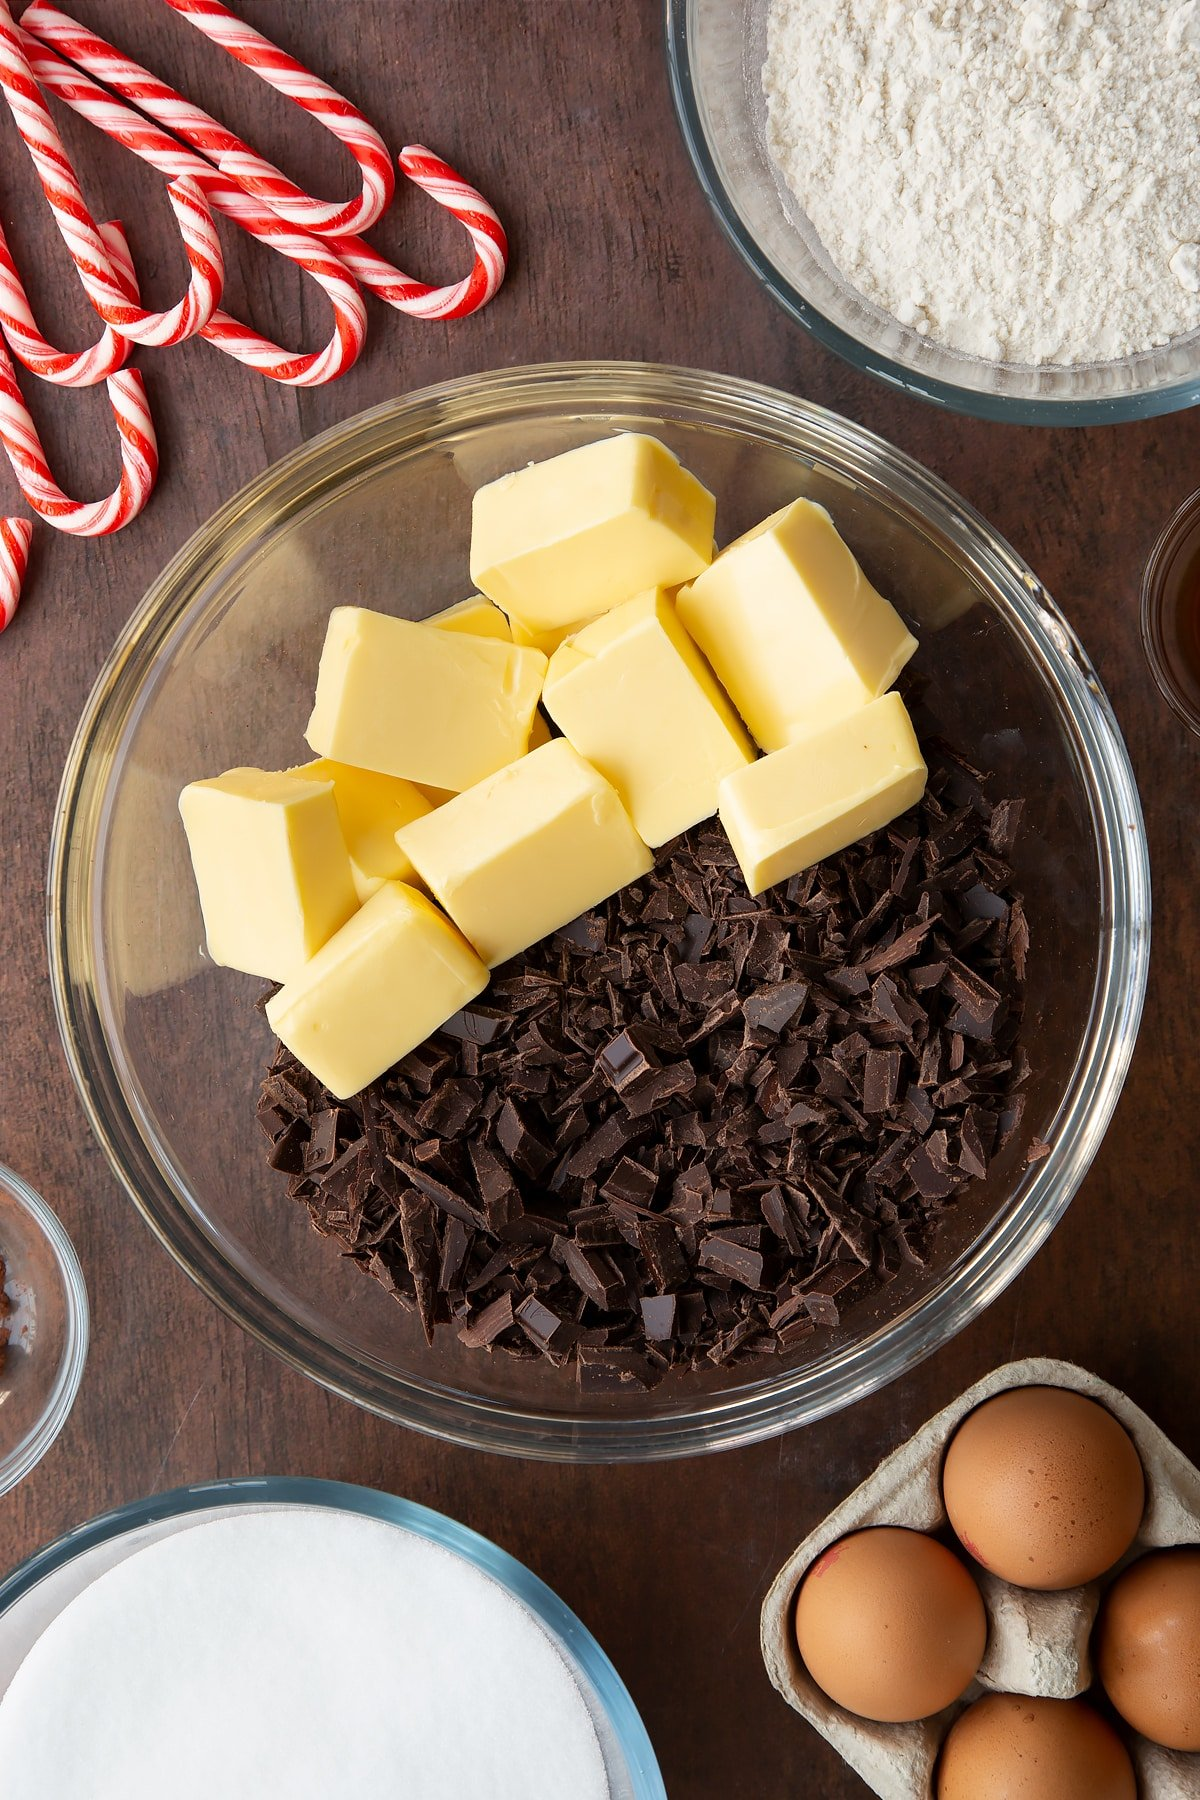 Cubed butter and chopped dark chocolate in a glass bowl. Ingredients to make Candy cane brownies surround the bowl.